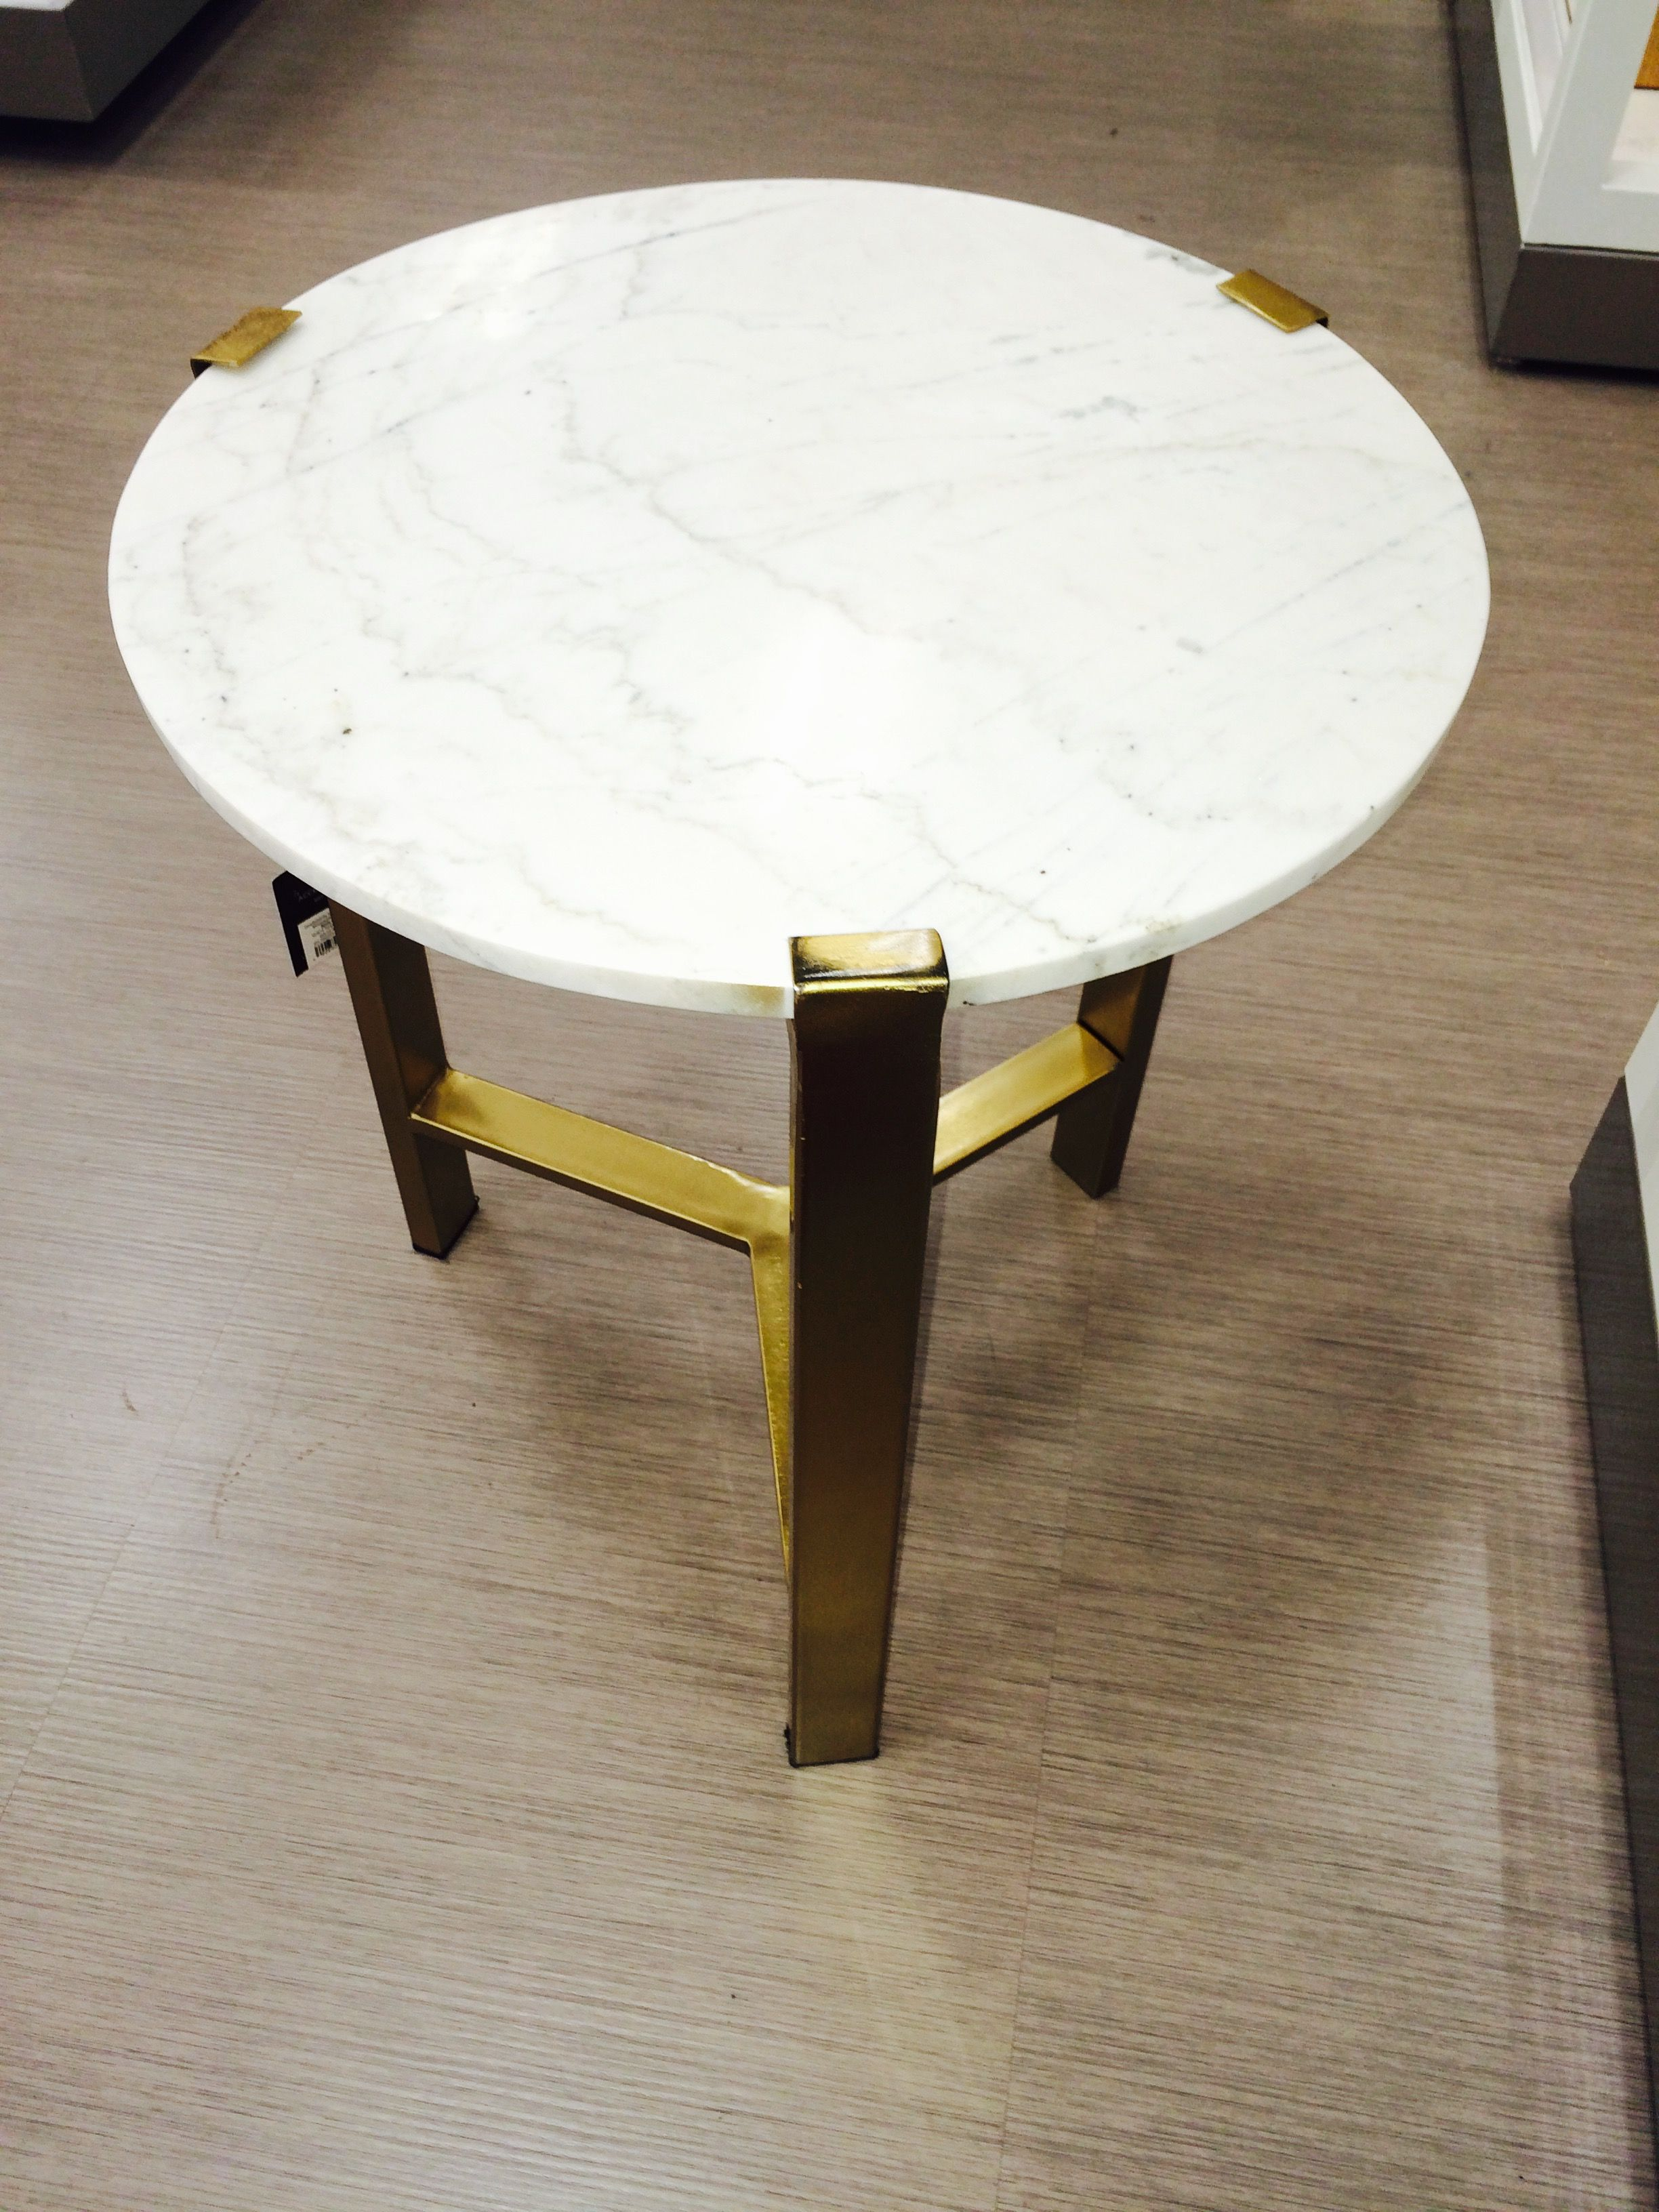 nate berkus for target gold accent table with marble top the antique white side pond lily tiffany lamp ethan allen fabrics unfinished small sage green pink patio umbrella dining